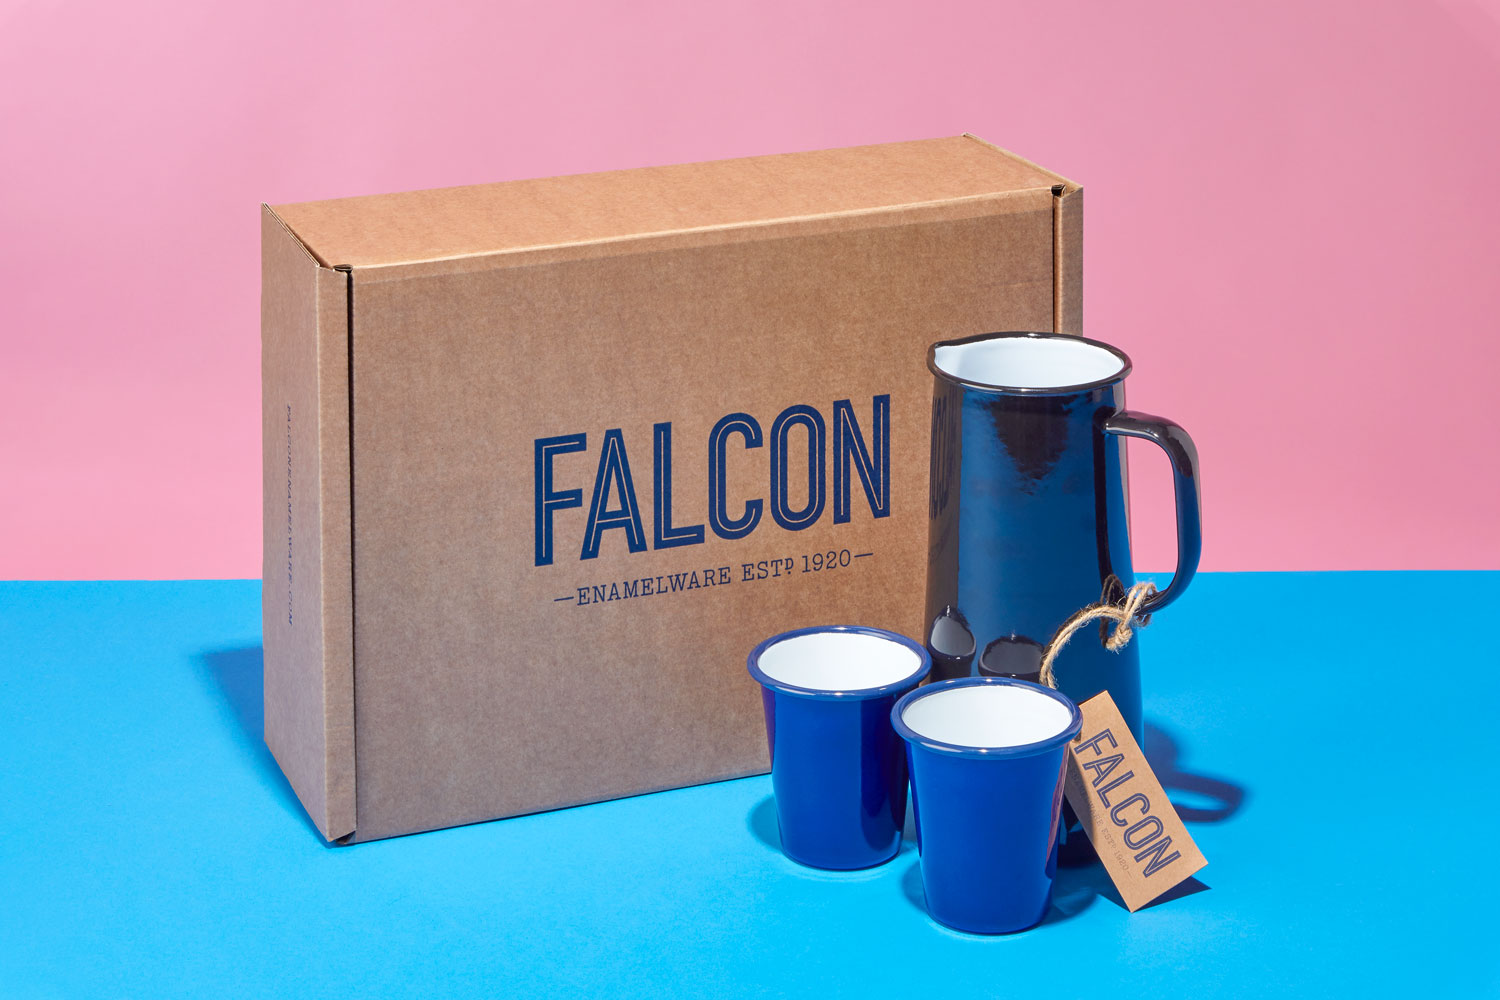 Progress Packaging Falcon Enamelware Bespoke Corrugate Kraft Ecommerce Box Manufacture Production Print 01